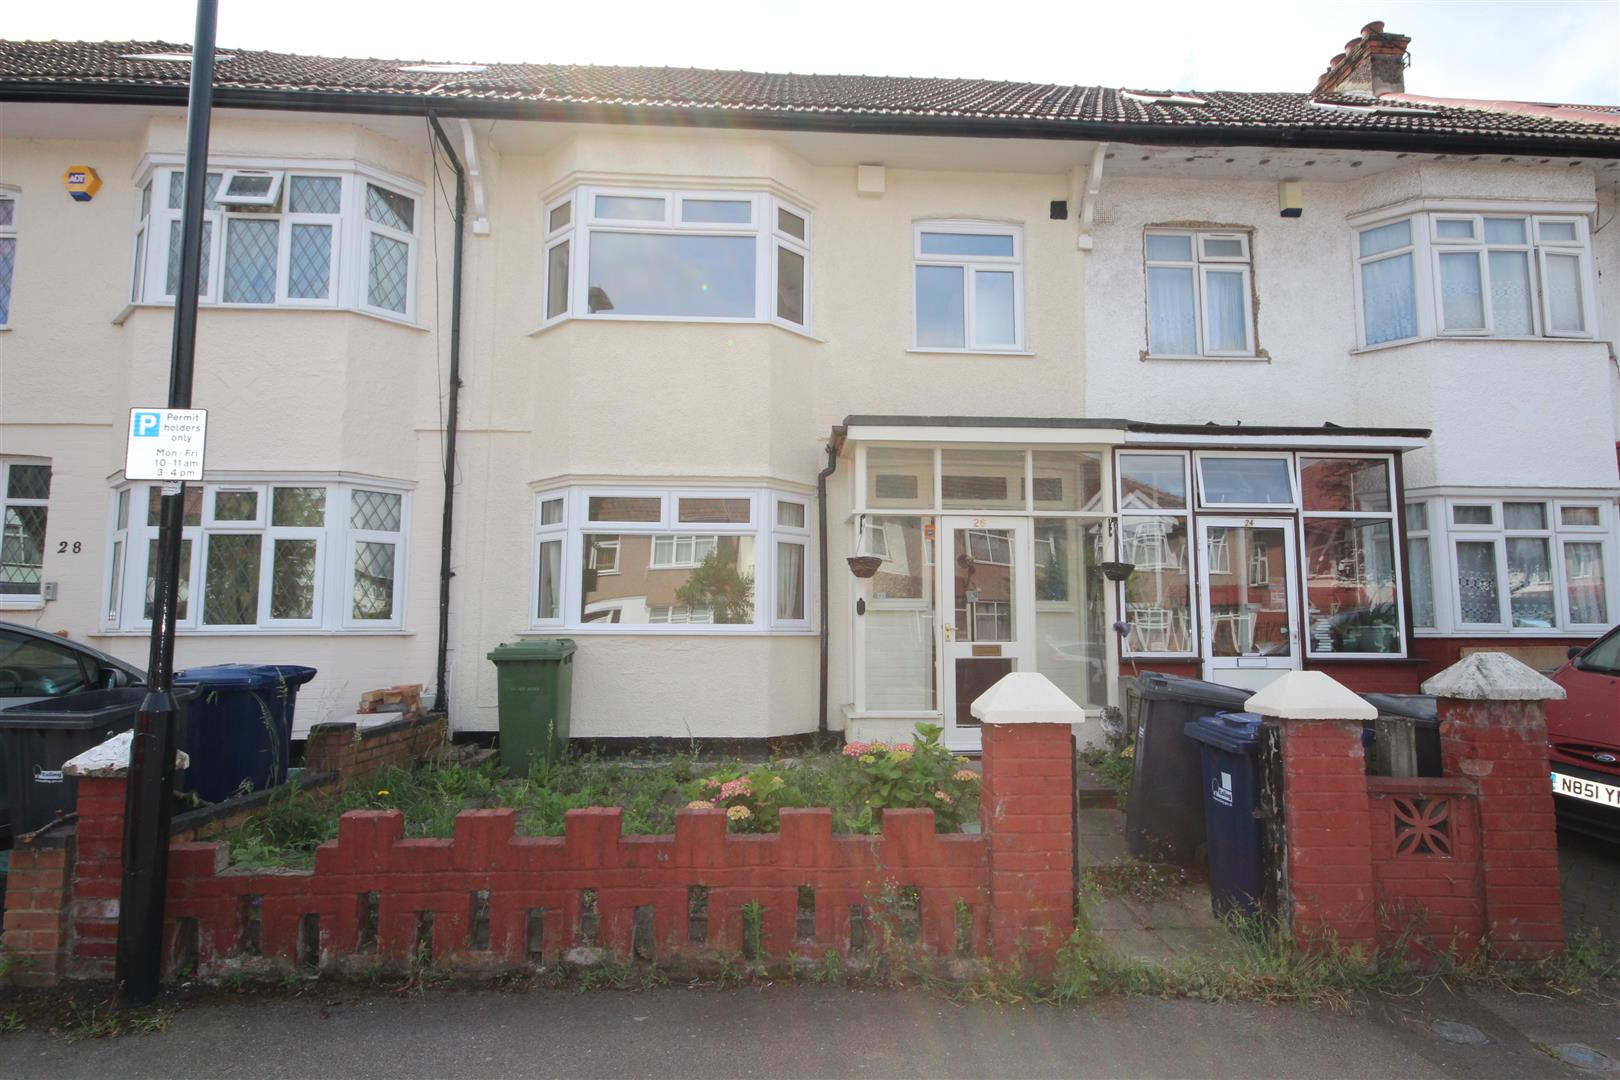 3 Bedrooms House for sale in Wesley Avenue, North Acton, NW10 7BN